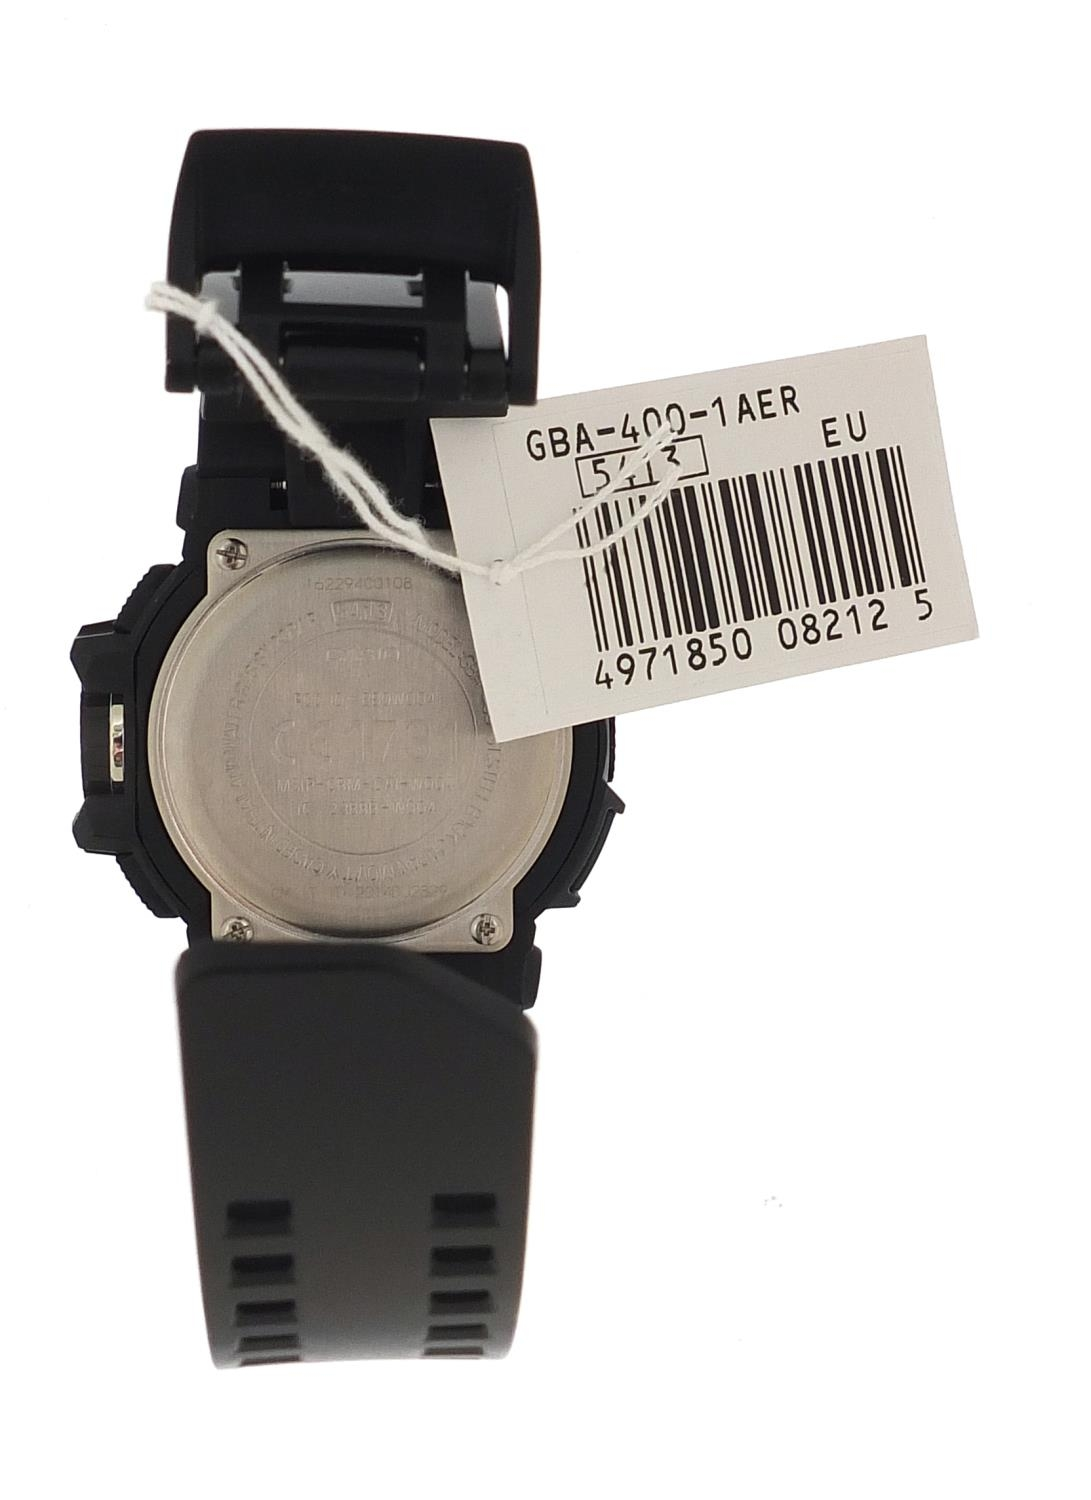 Casio, gentlemen's G-Shock wristwatch with box and paperwork, model GBA-400 :For Further Condition - Image 4 of 8